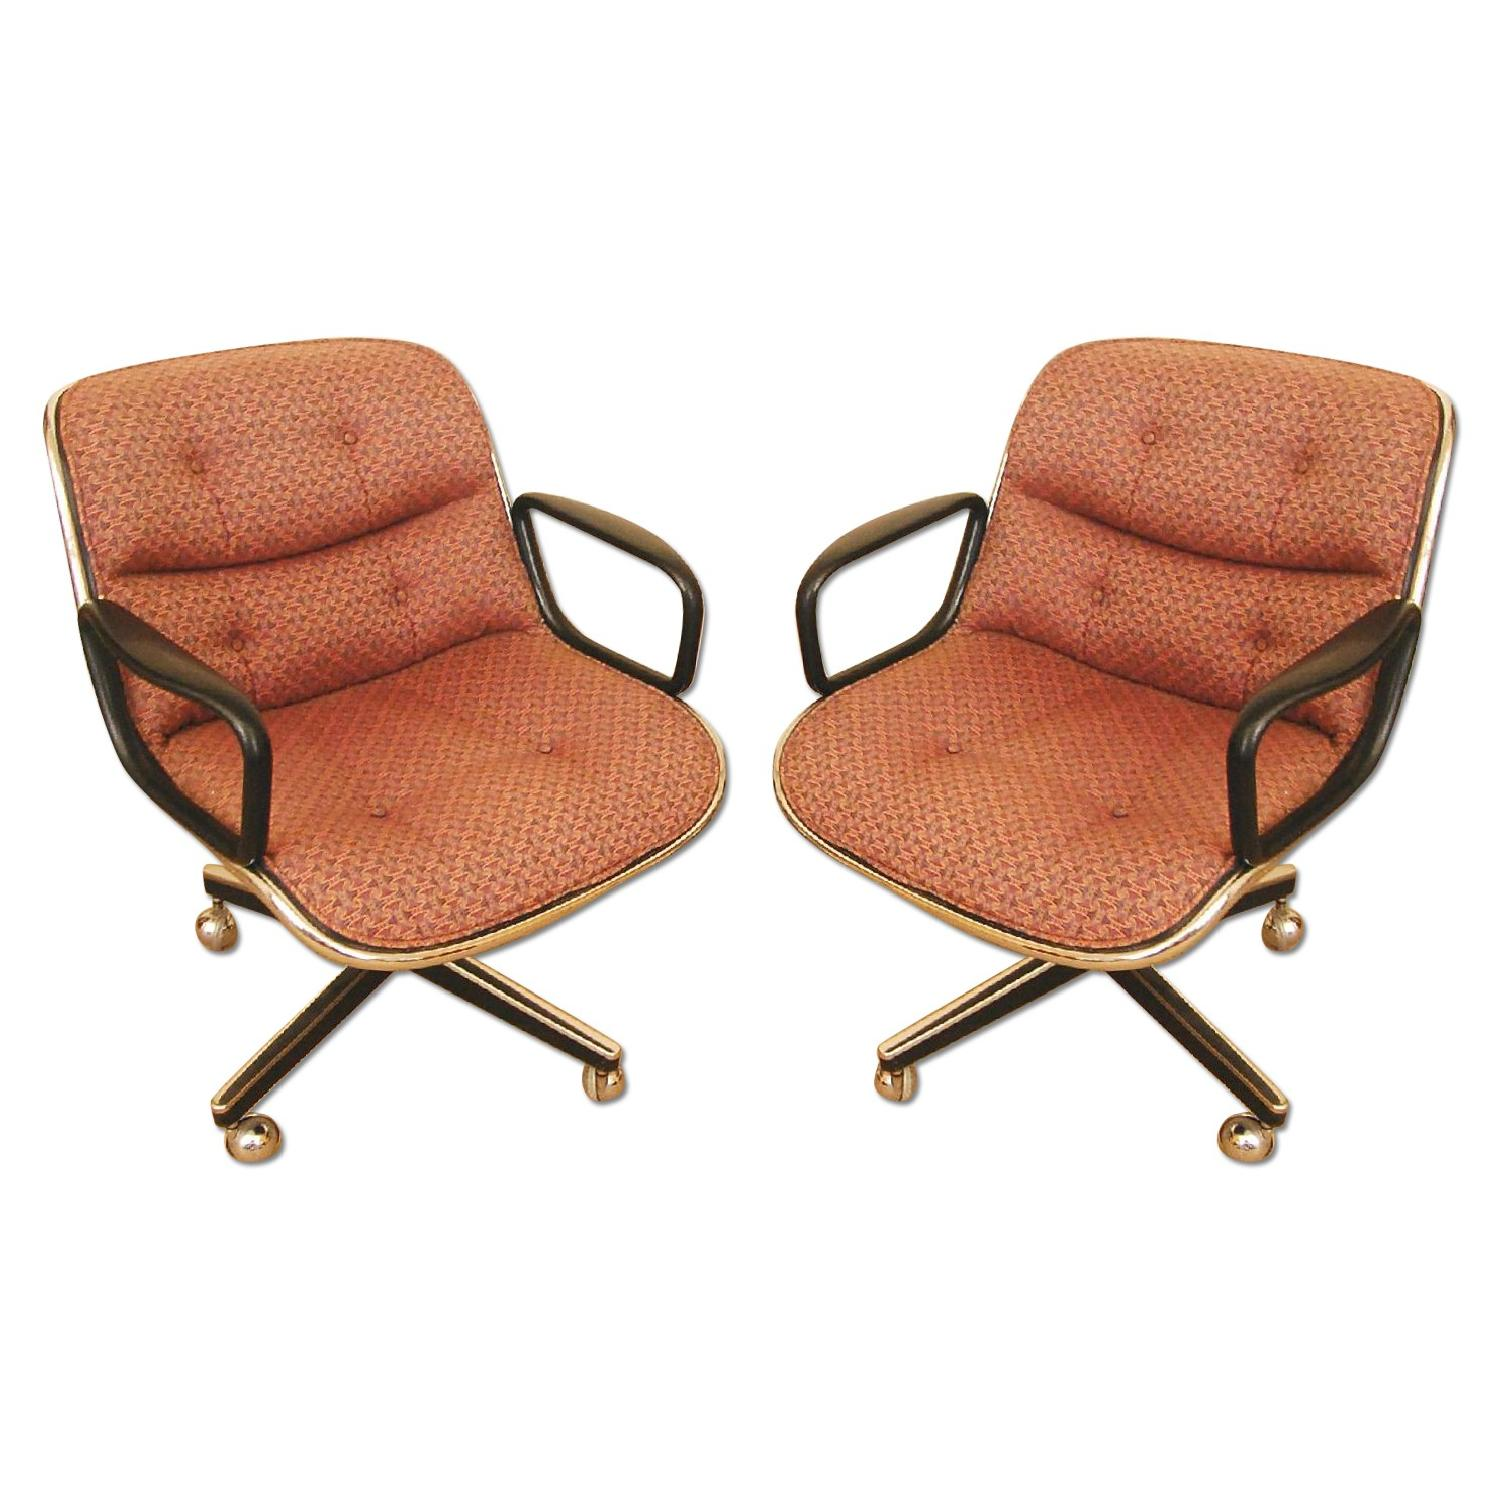 Mid Century Modern Swivel Desk Chair by Charles Pollock AptDeco